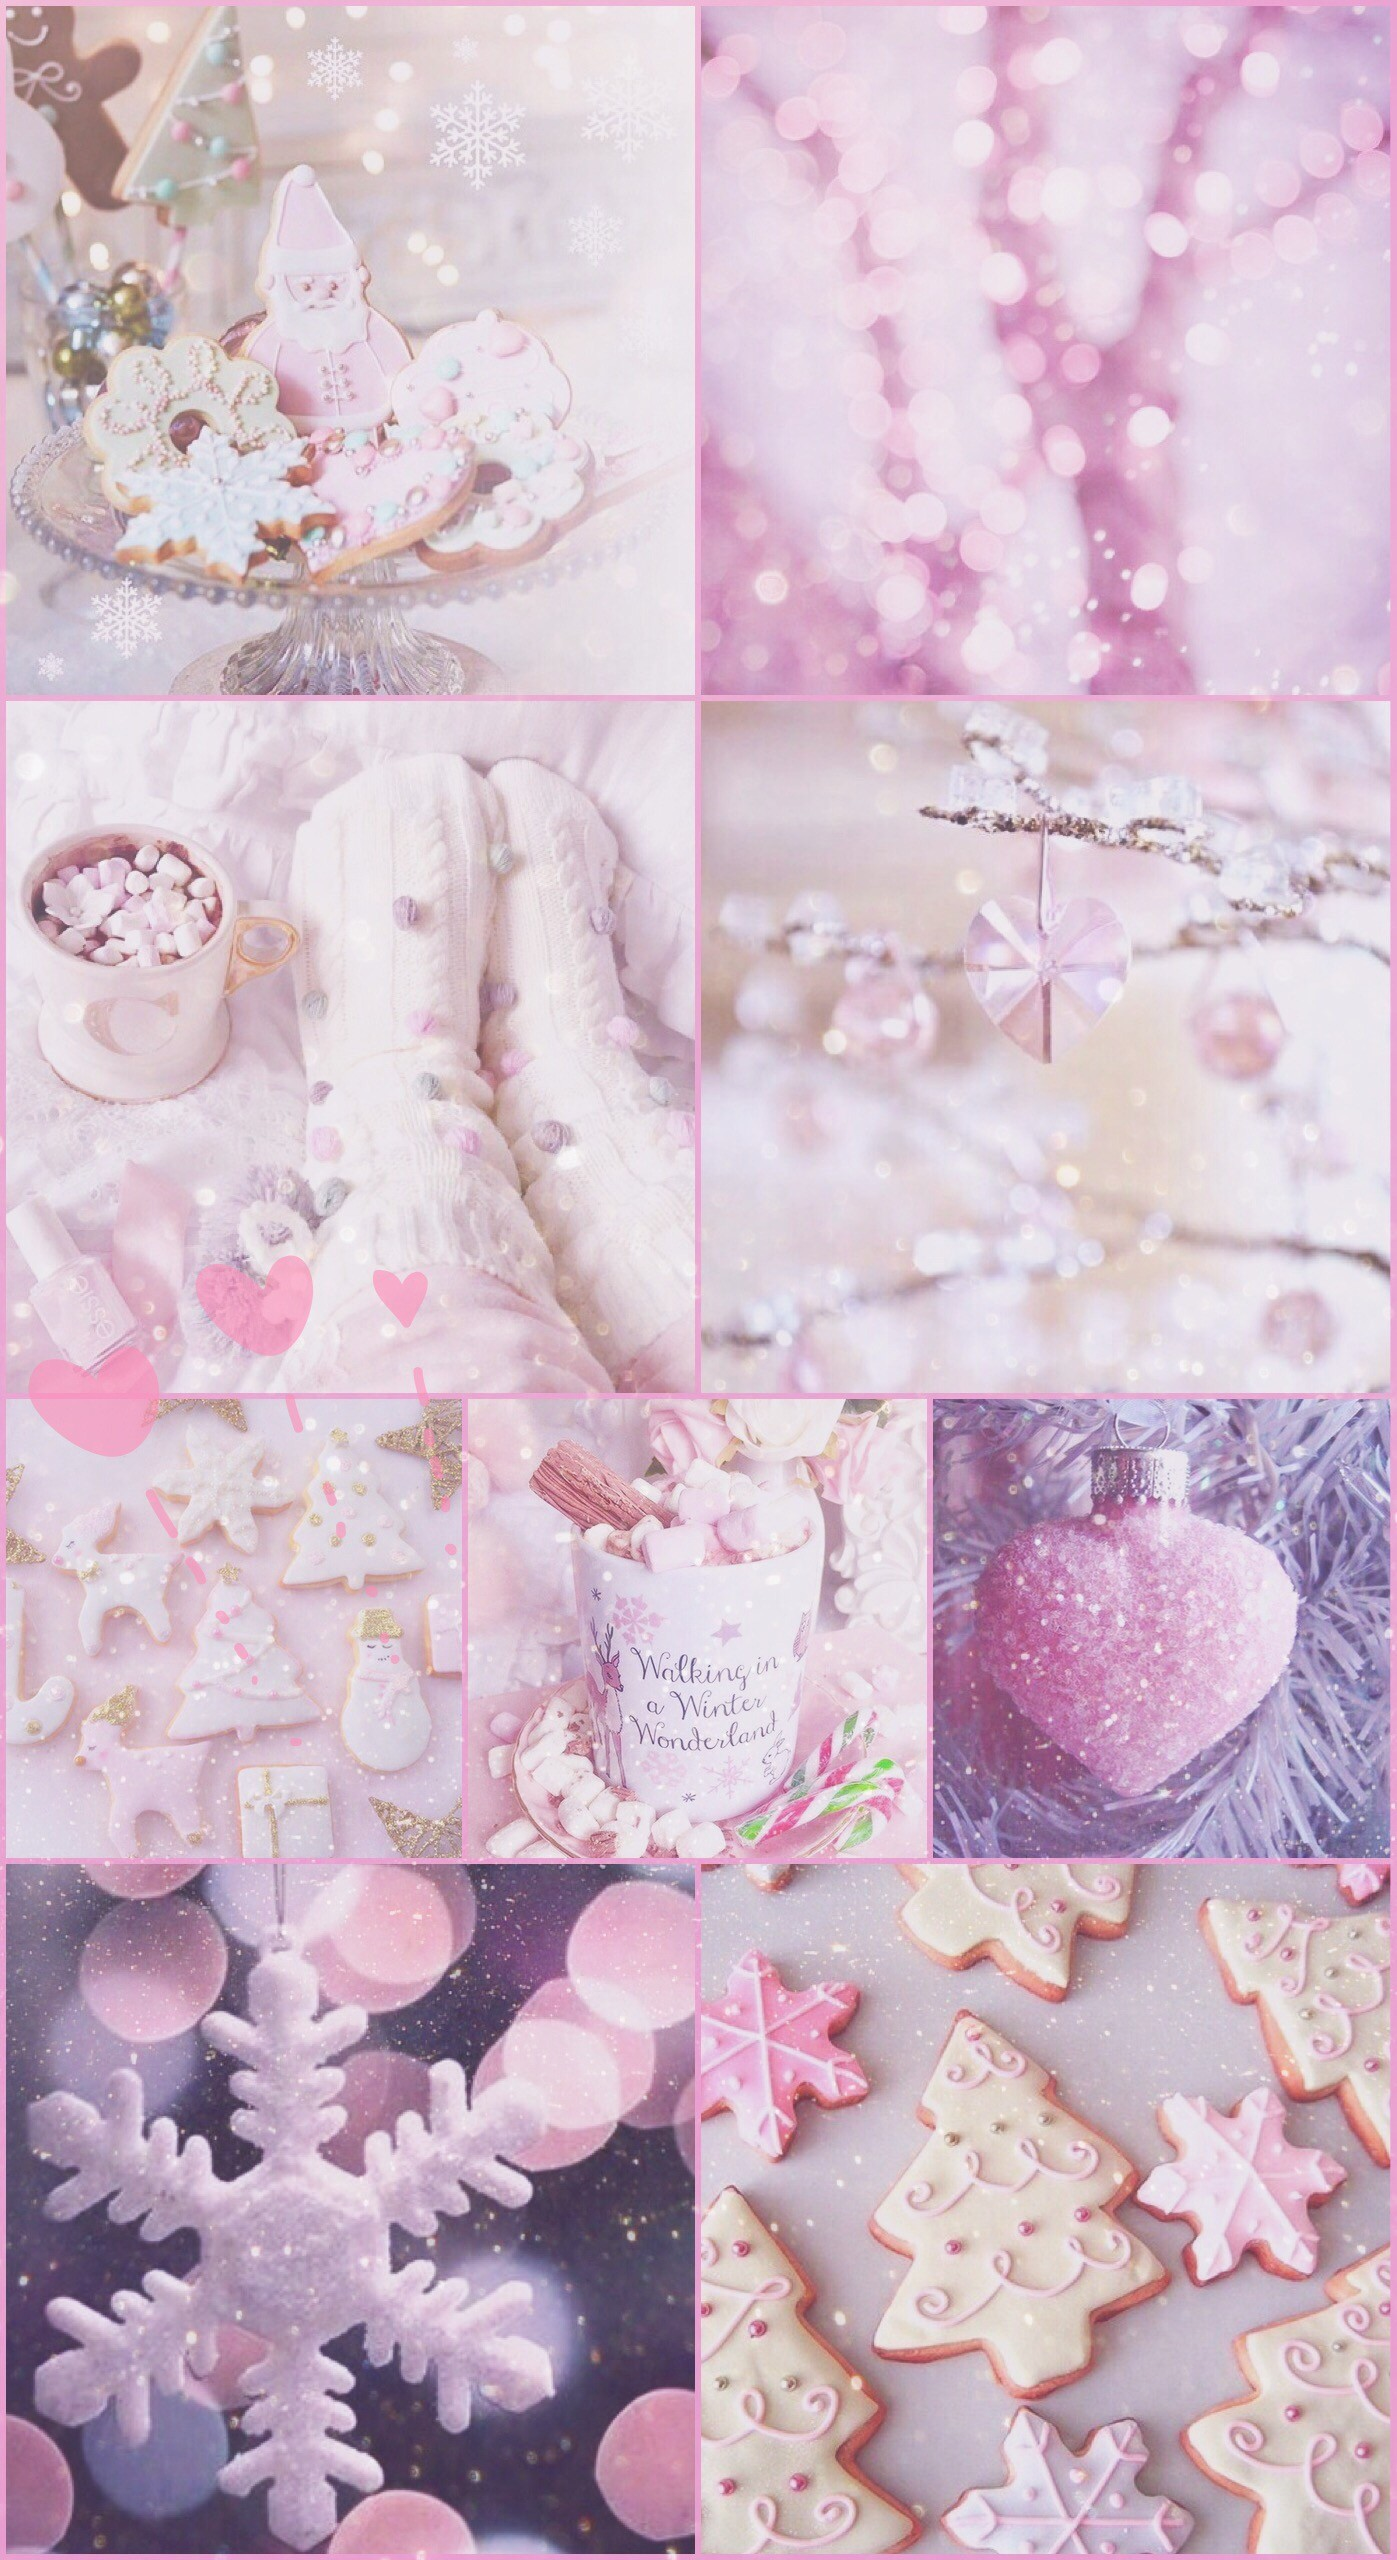 Really Cute Backgrounds 183 ① Wallpapertag